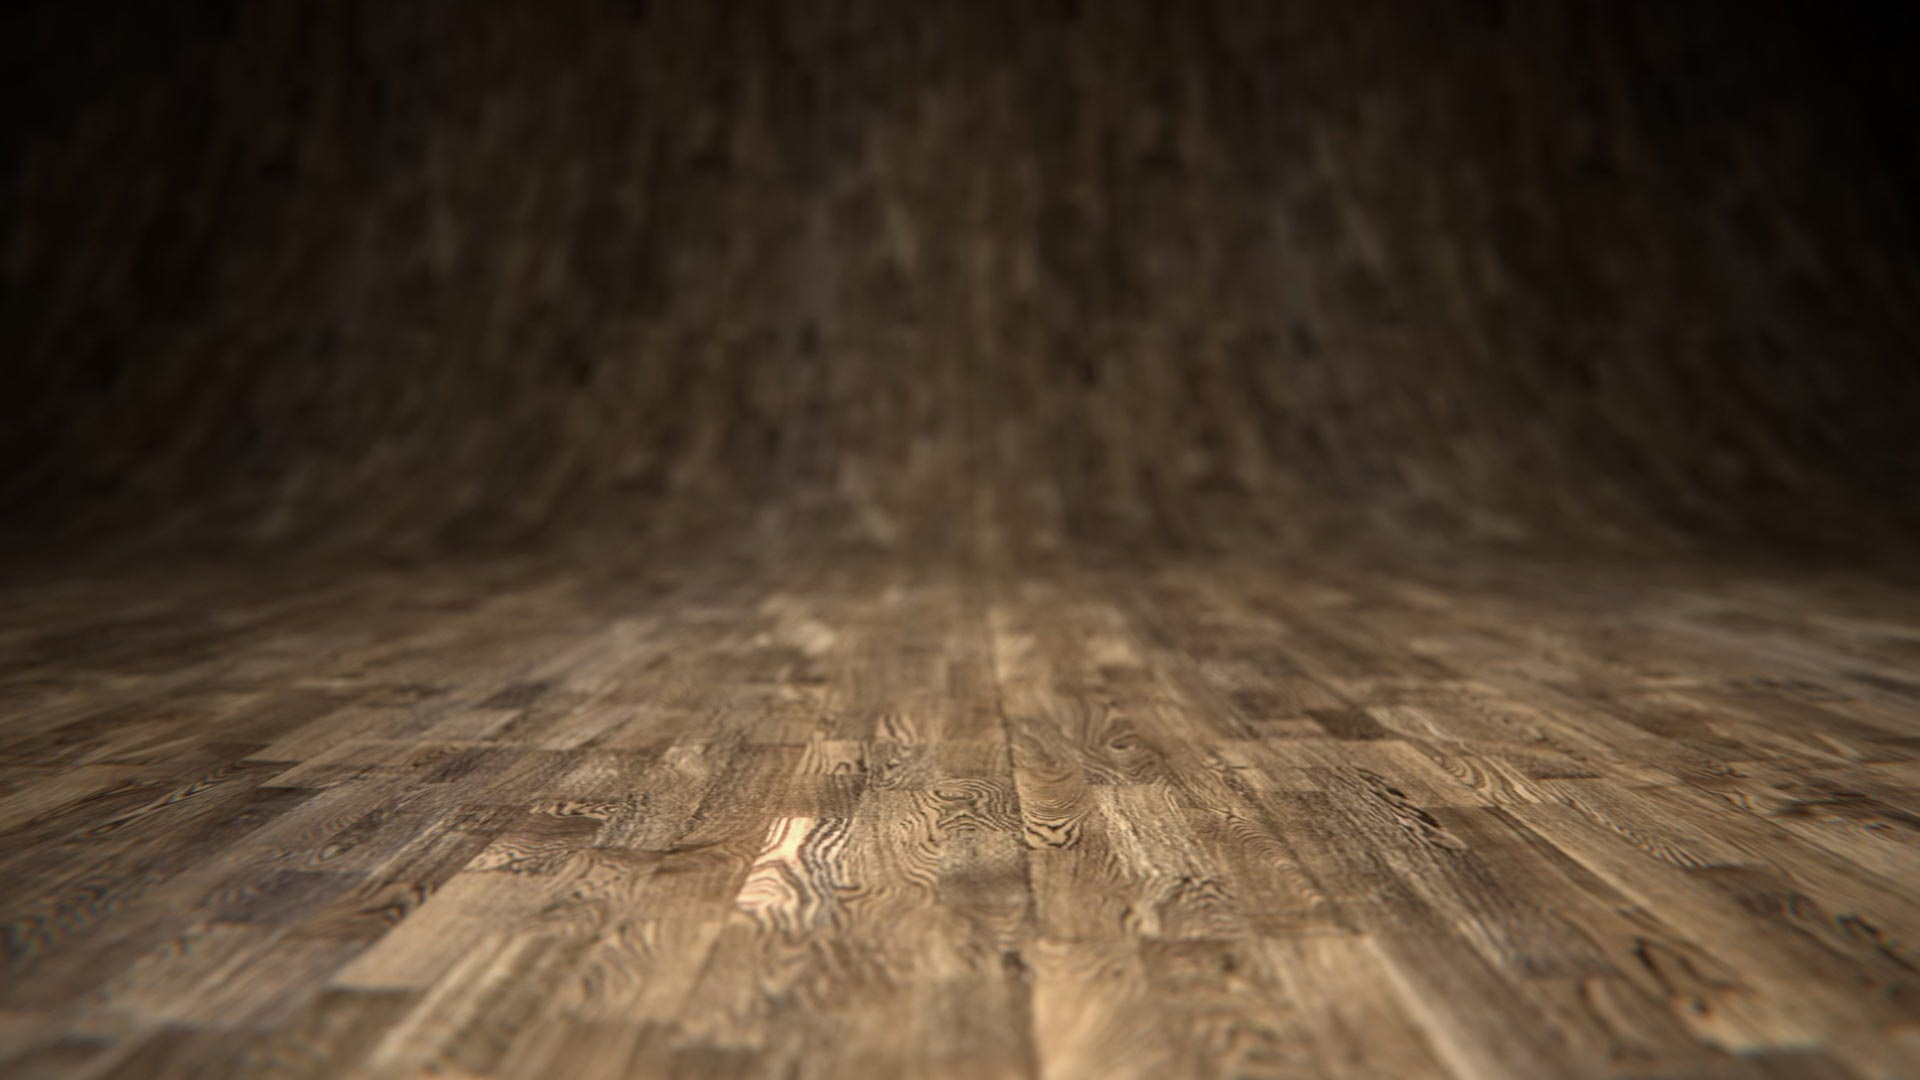 Wood Floor and Wall Background